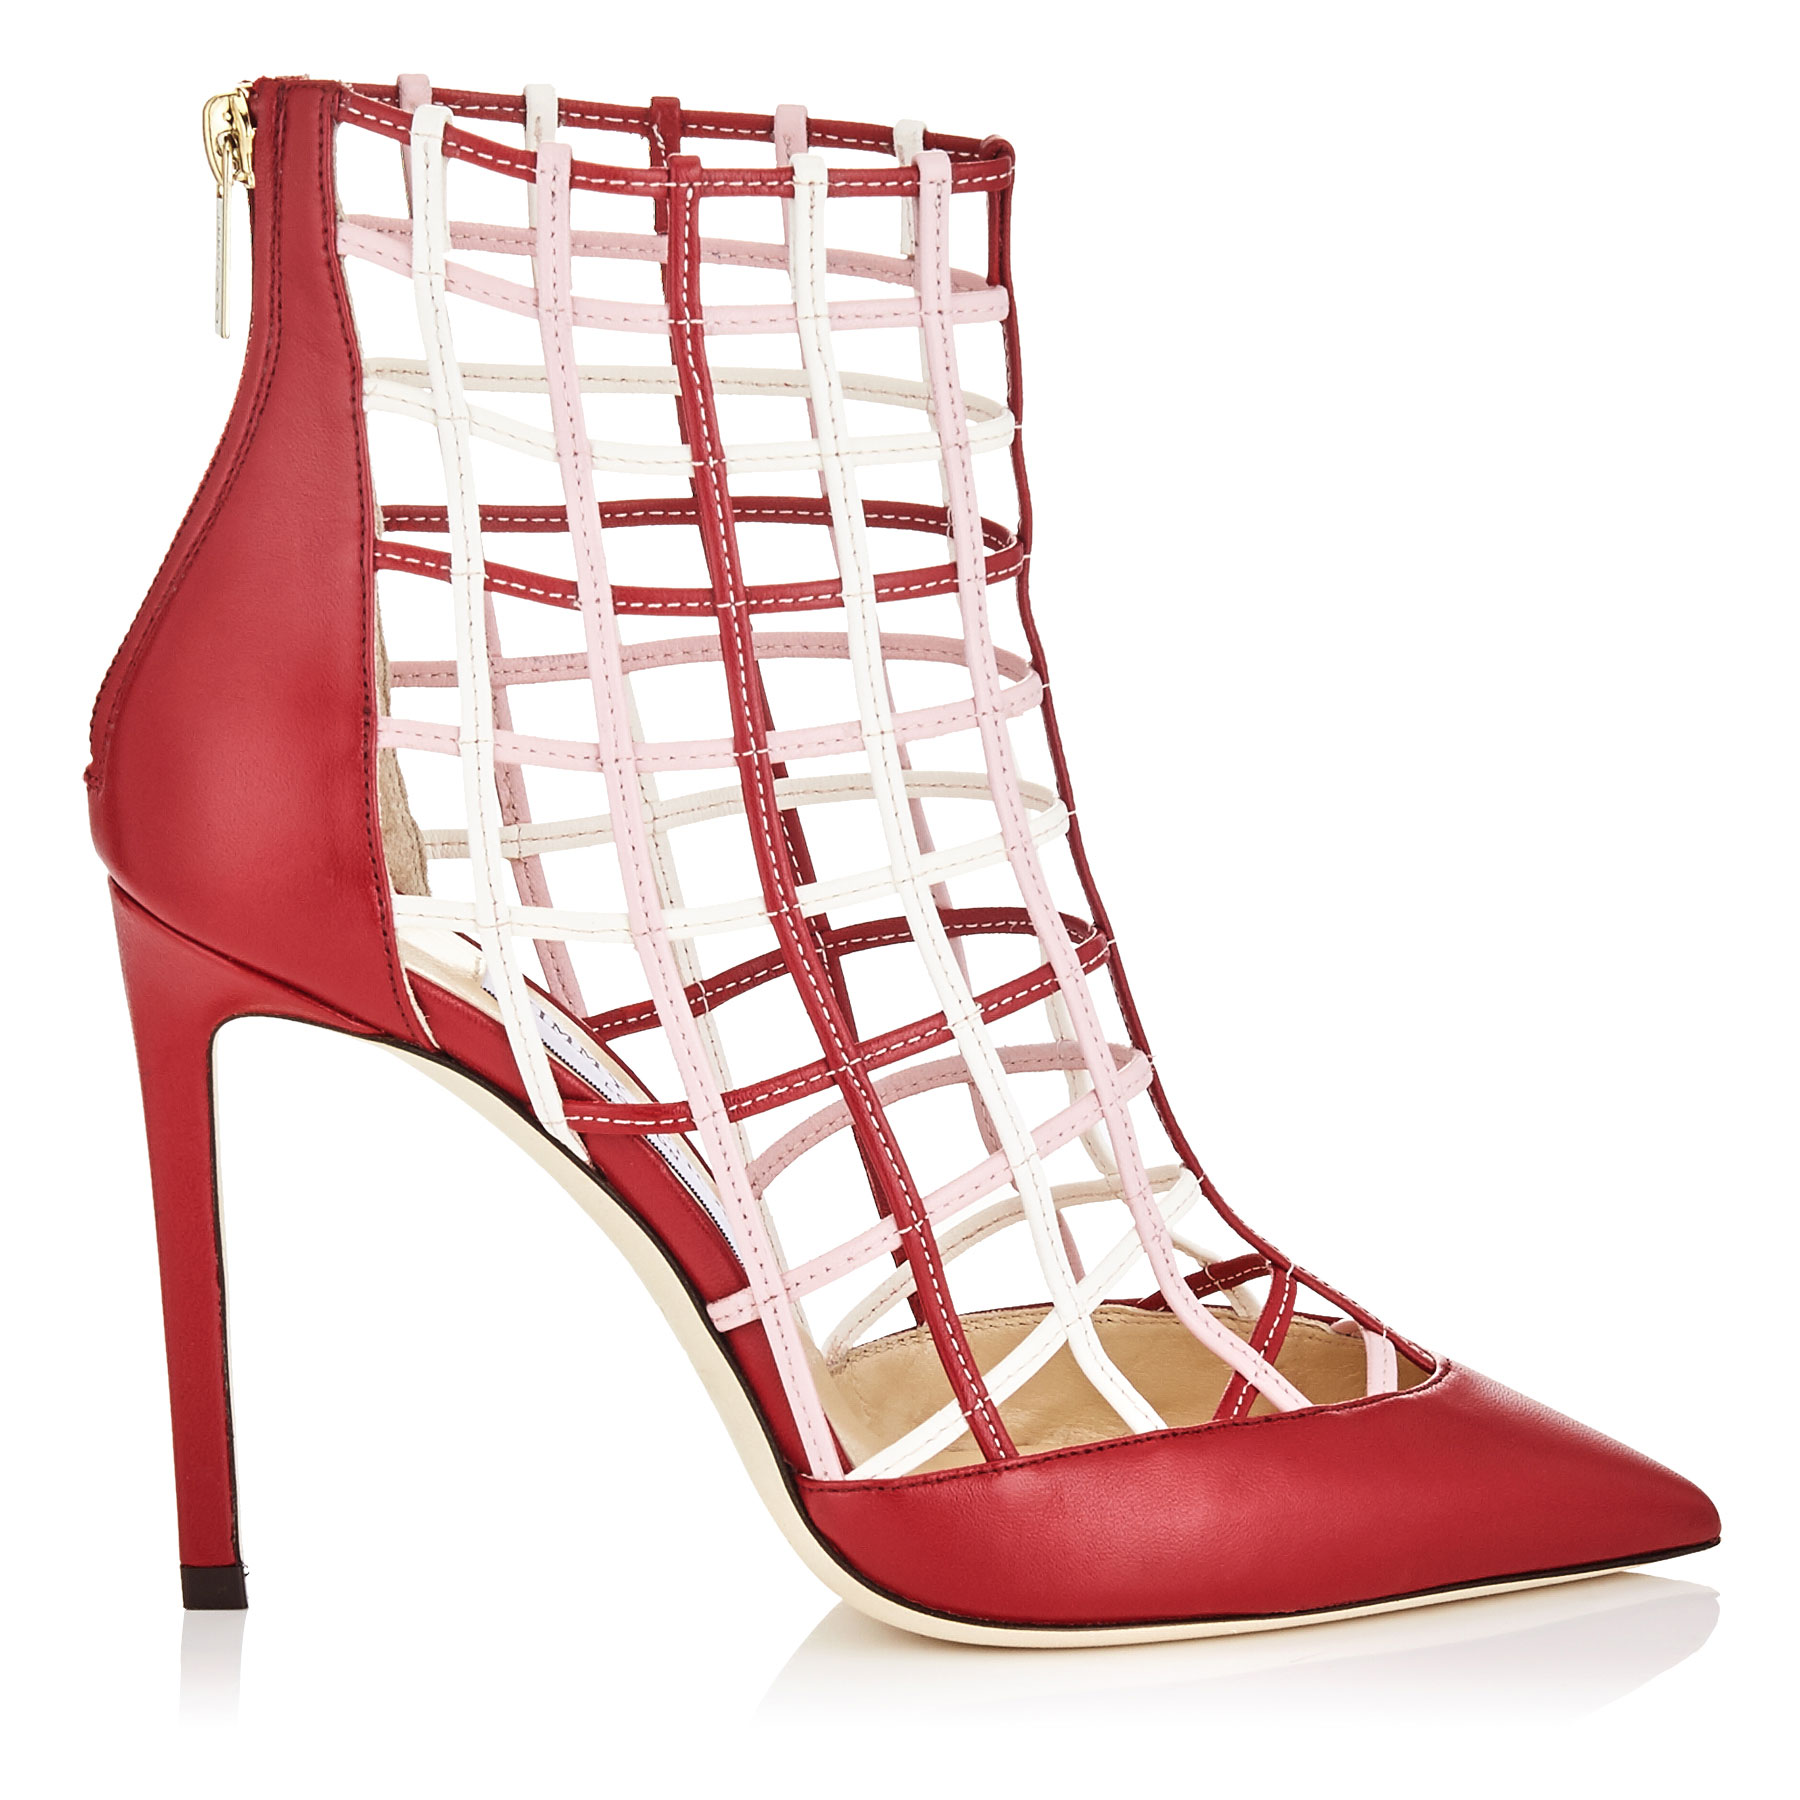 SHELDON 100 Red Nappa Leather Booties with Rosewater and Chalk Caged Detailing by Jimmy Choo